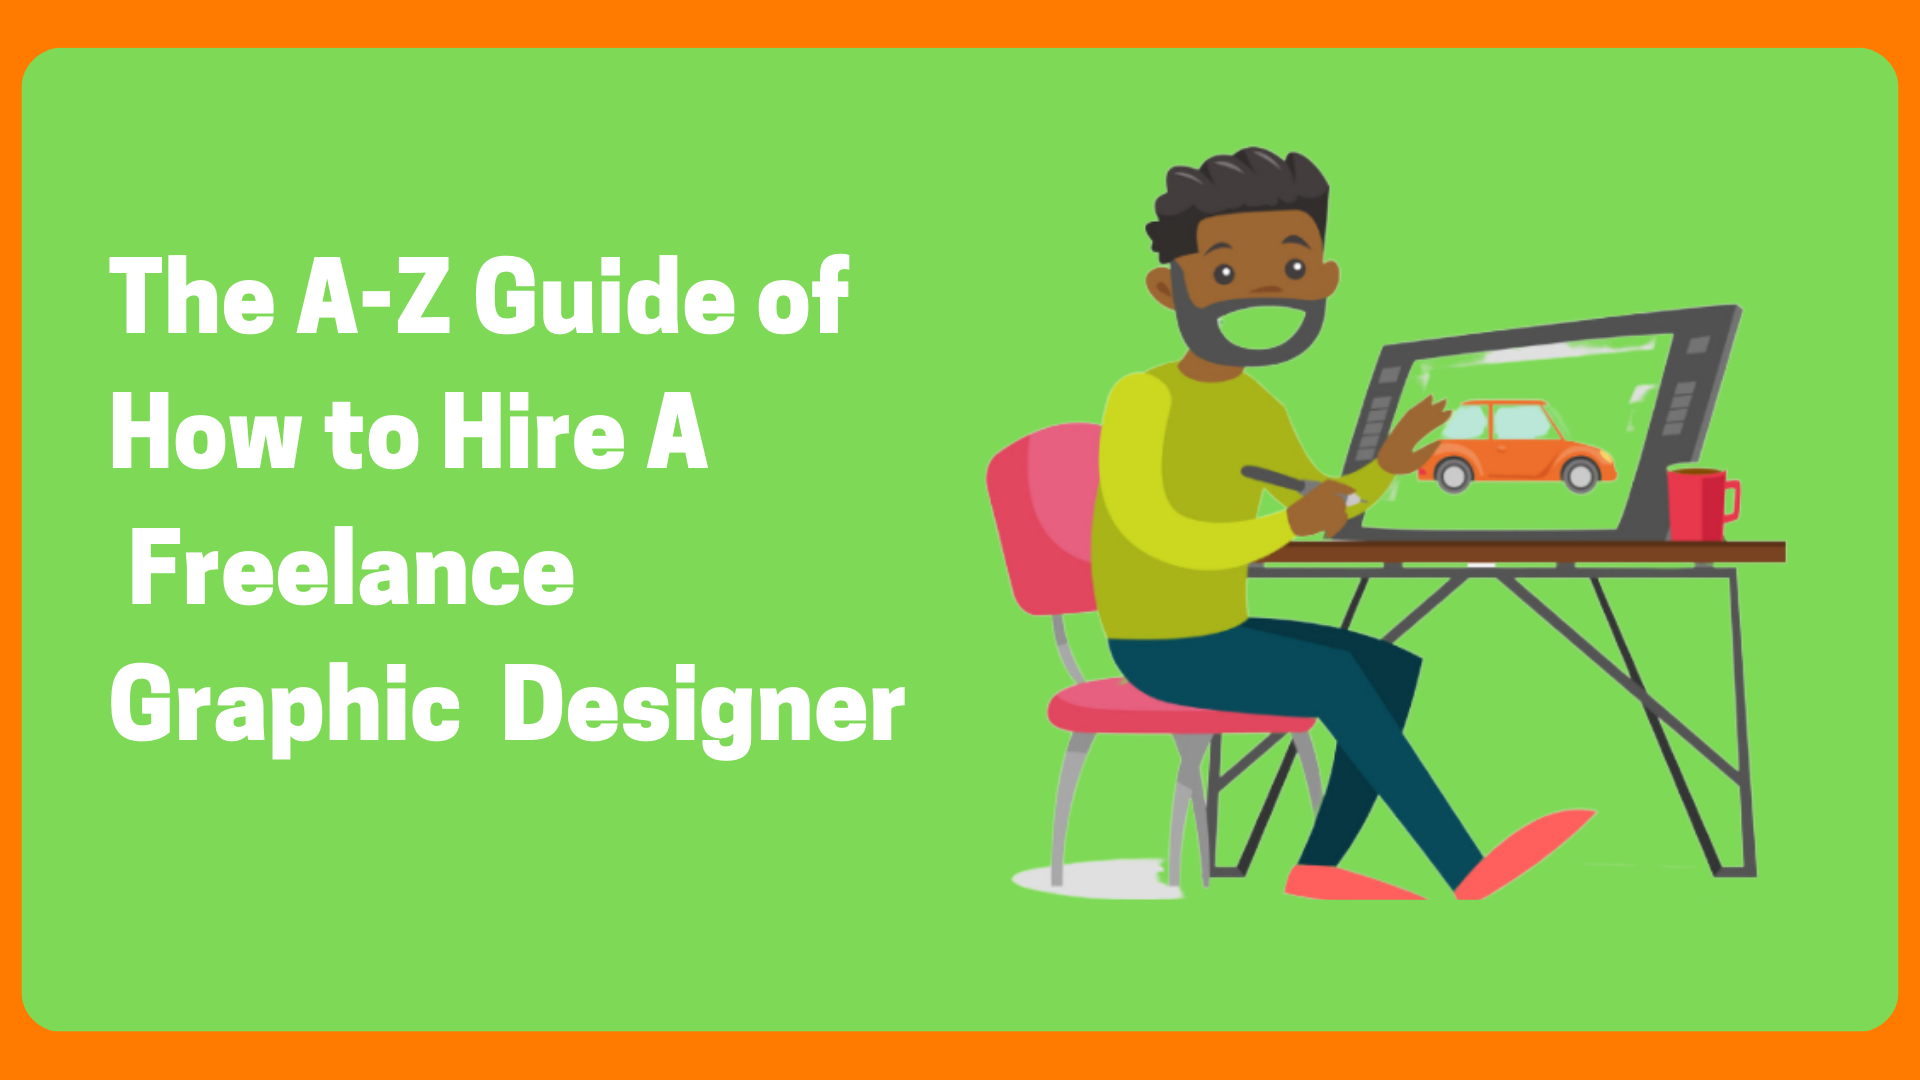 The A-Z Guide of How to Hire A Freelance Graphic Designer